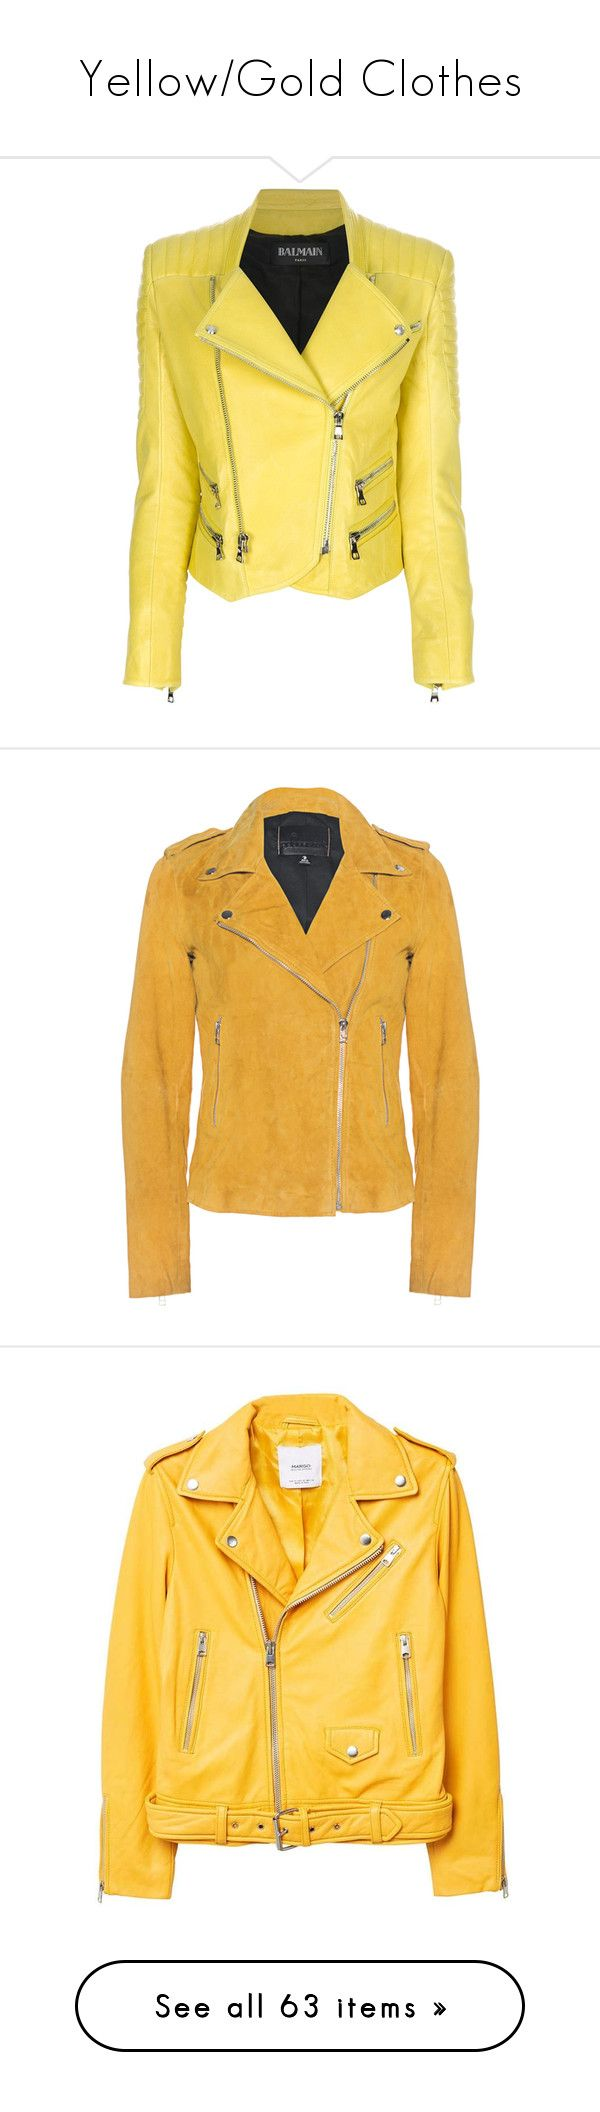 """""""Yellow/Gold Clothes"""" by carlou863 on Polyvore featuring outerwear, jackets, coats, balmain, leather jacket, rider leather jacket, fitted leather jacket, motorcycle jacket, moto jacket et yellow leather jacket"""